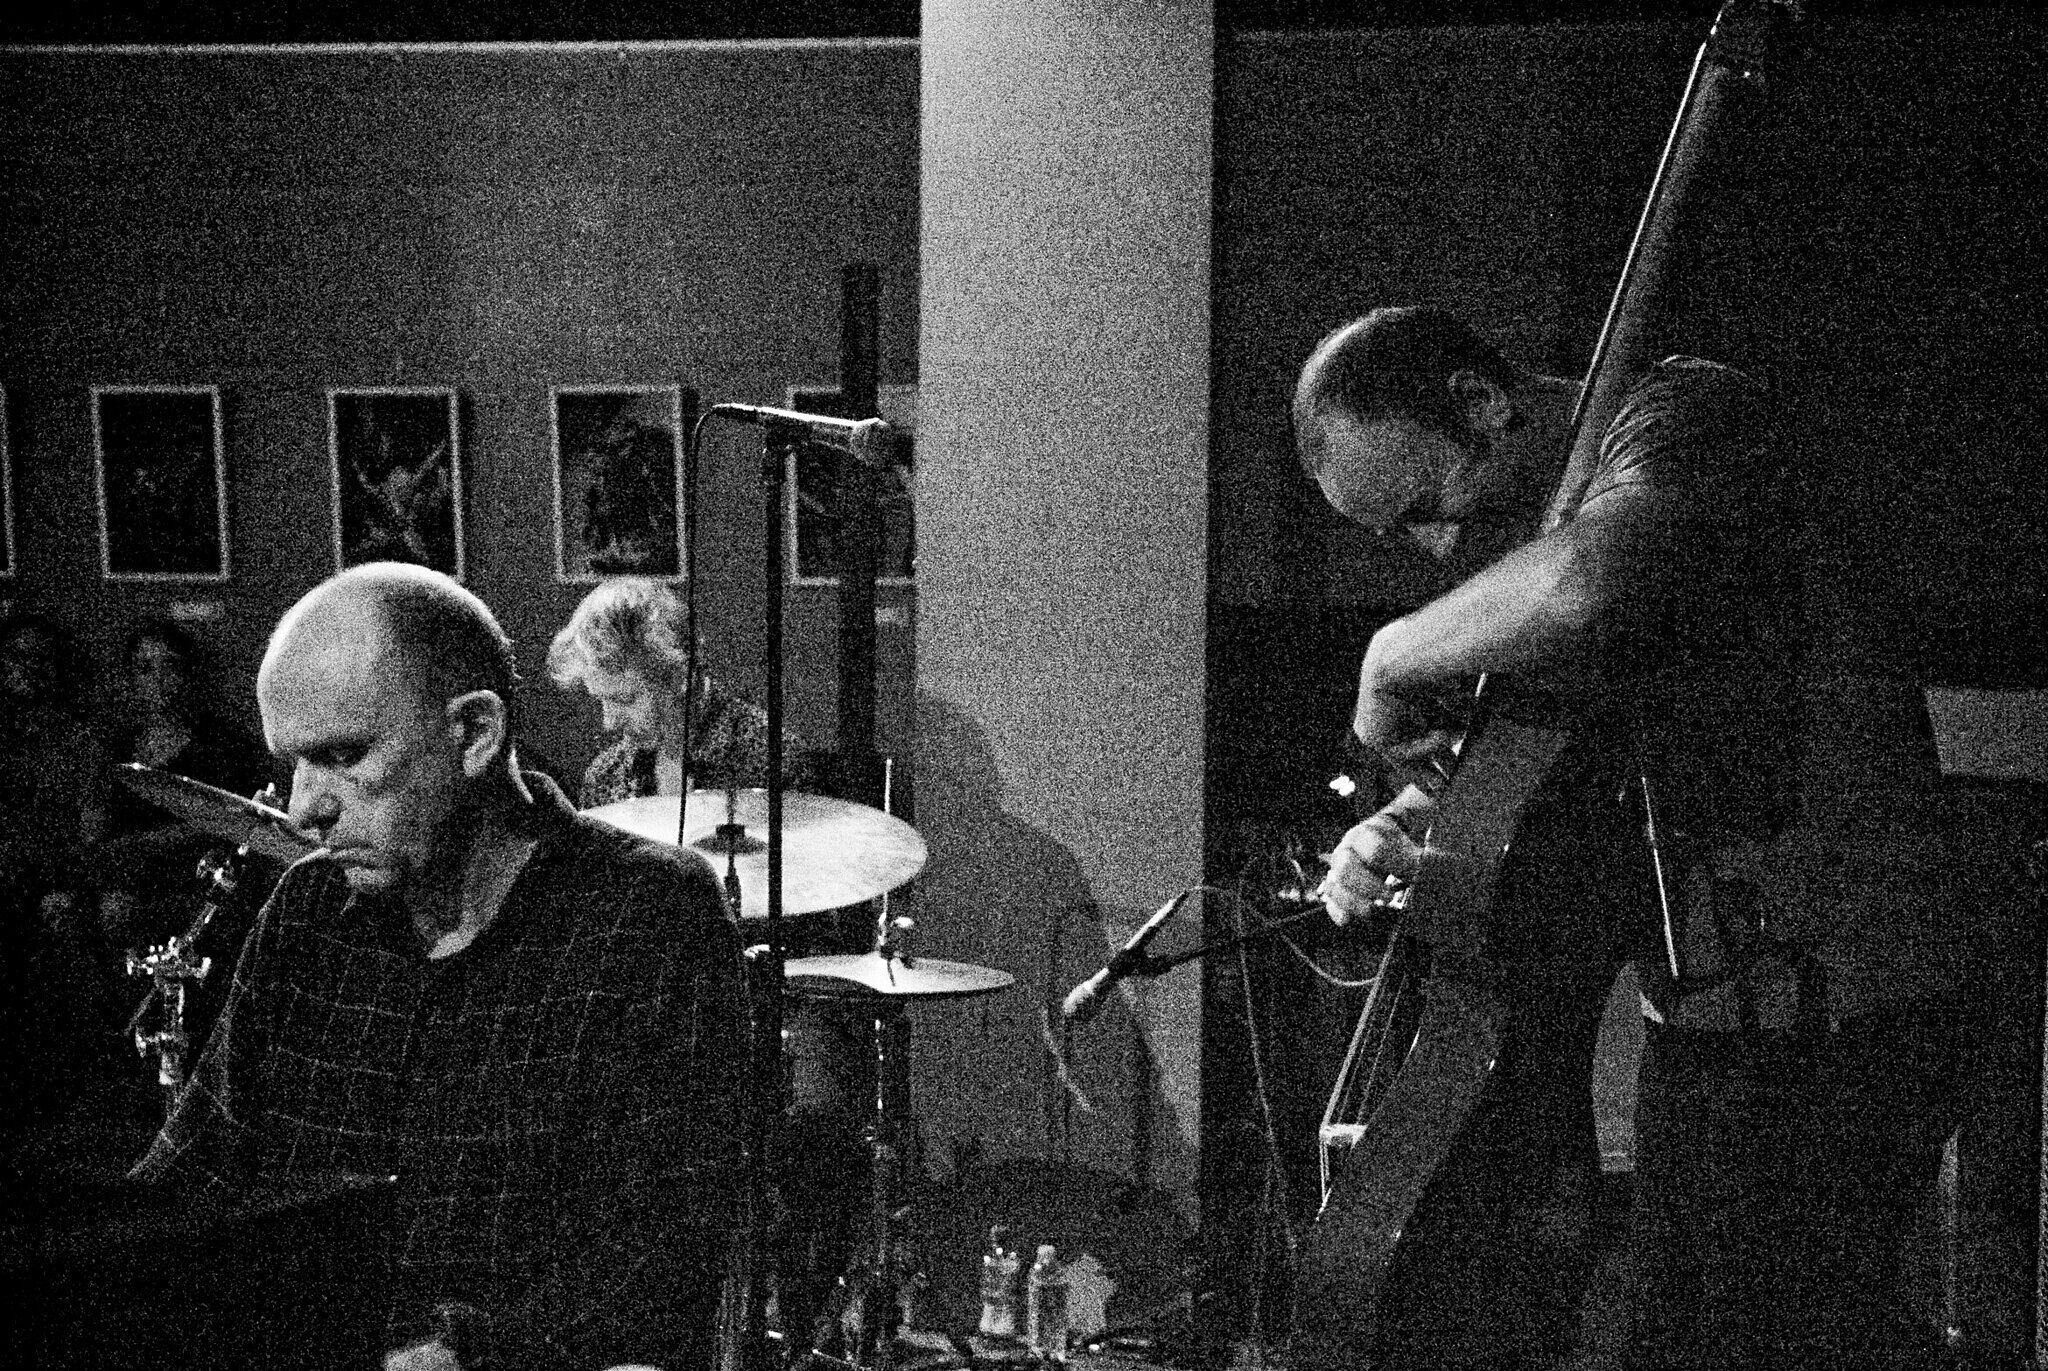 The Necks playing music in a black and white photo.